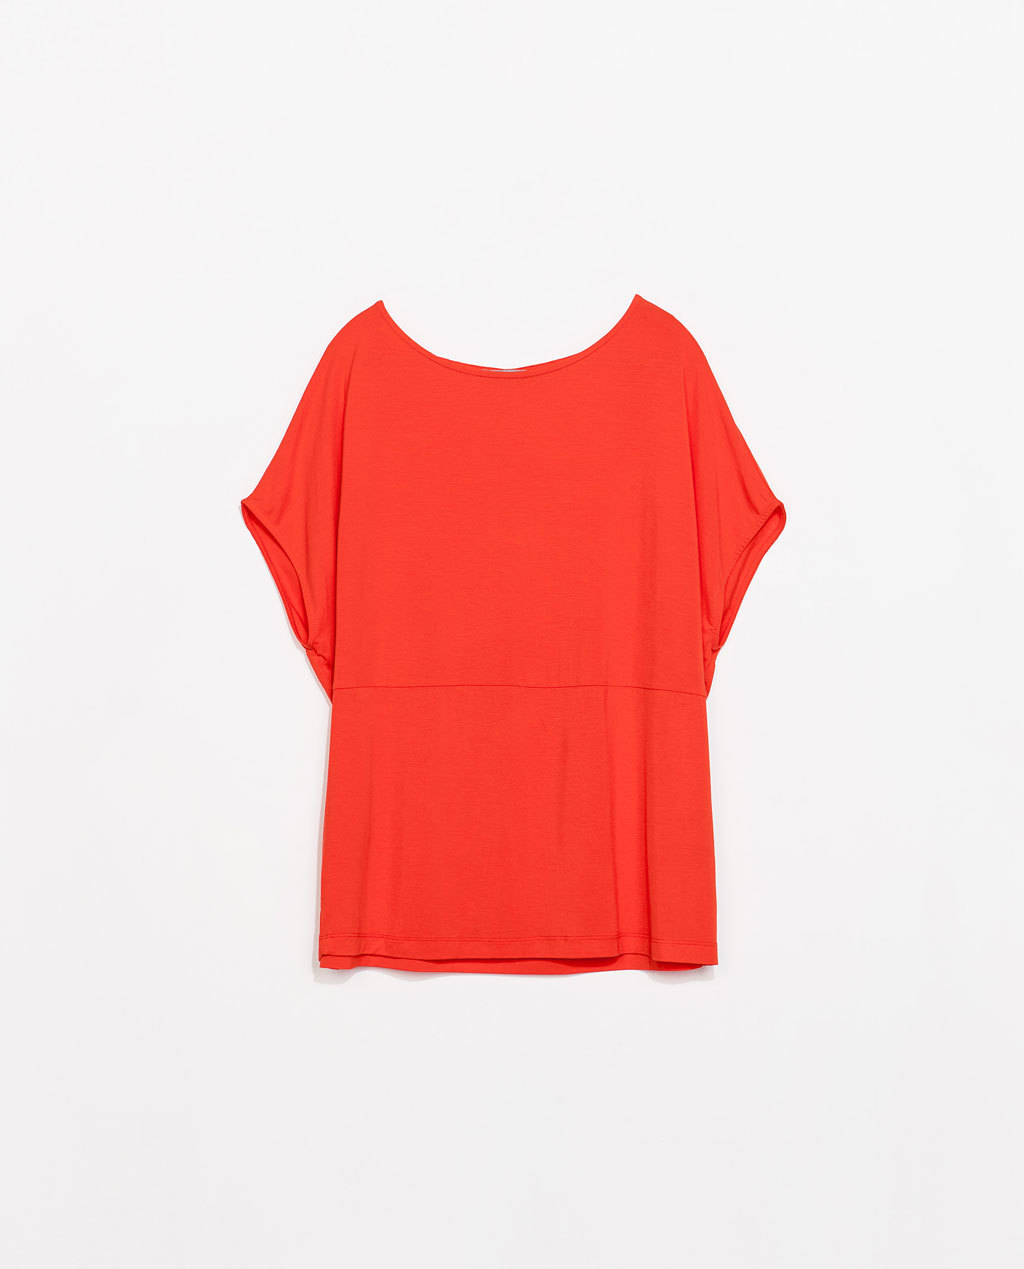 Viscose T Shirt - neckline: round neck; pattern: plain; predominant colour: bright orange; occasions: casual; length: standard; style: top; fibres: viscose/rayon - stretch; fit: loose; sleeve length: short sleeve; sleeve style: standard; pattern type: fabric; texture group: jersey - stretchy/drapey; trends: hot brights; season: s/s 2014